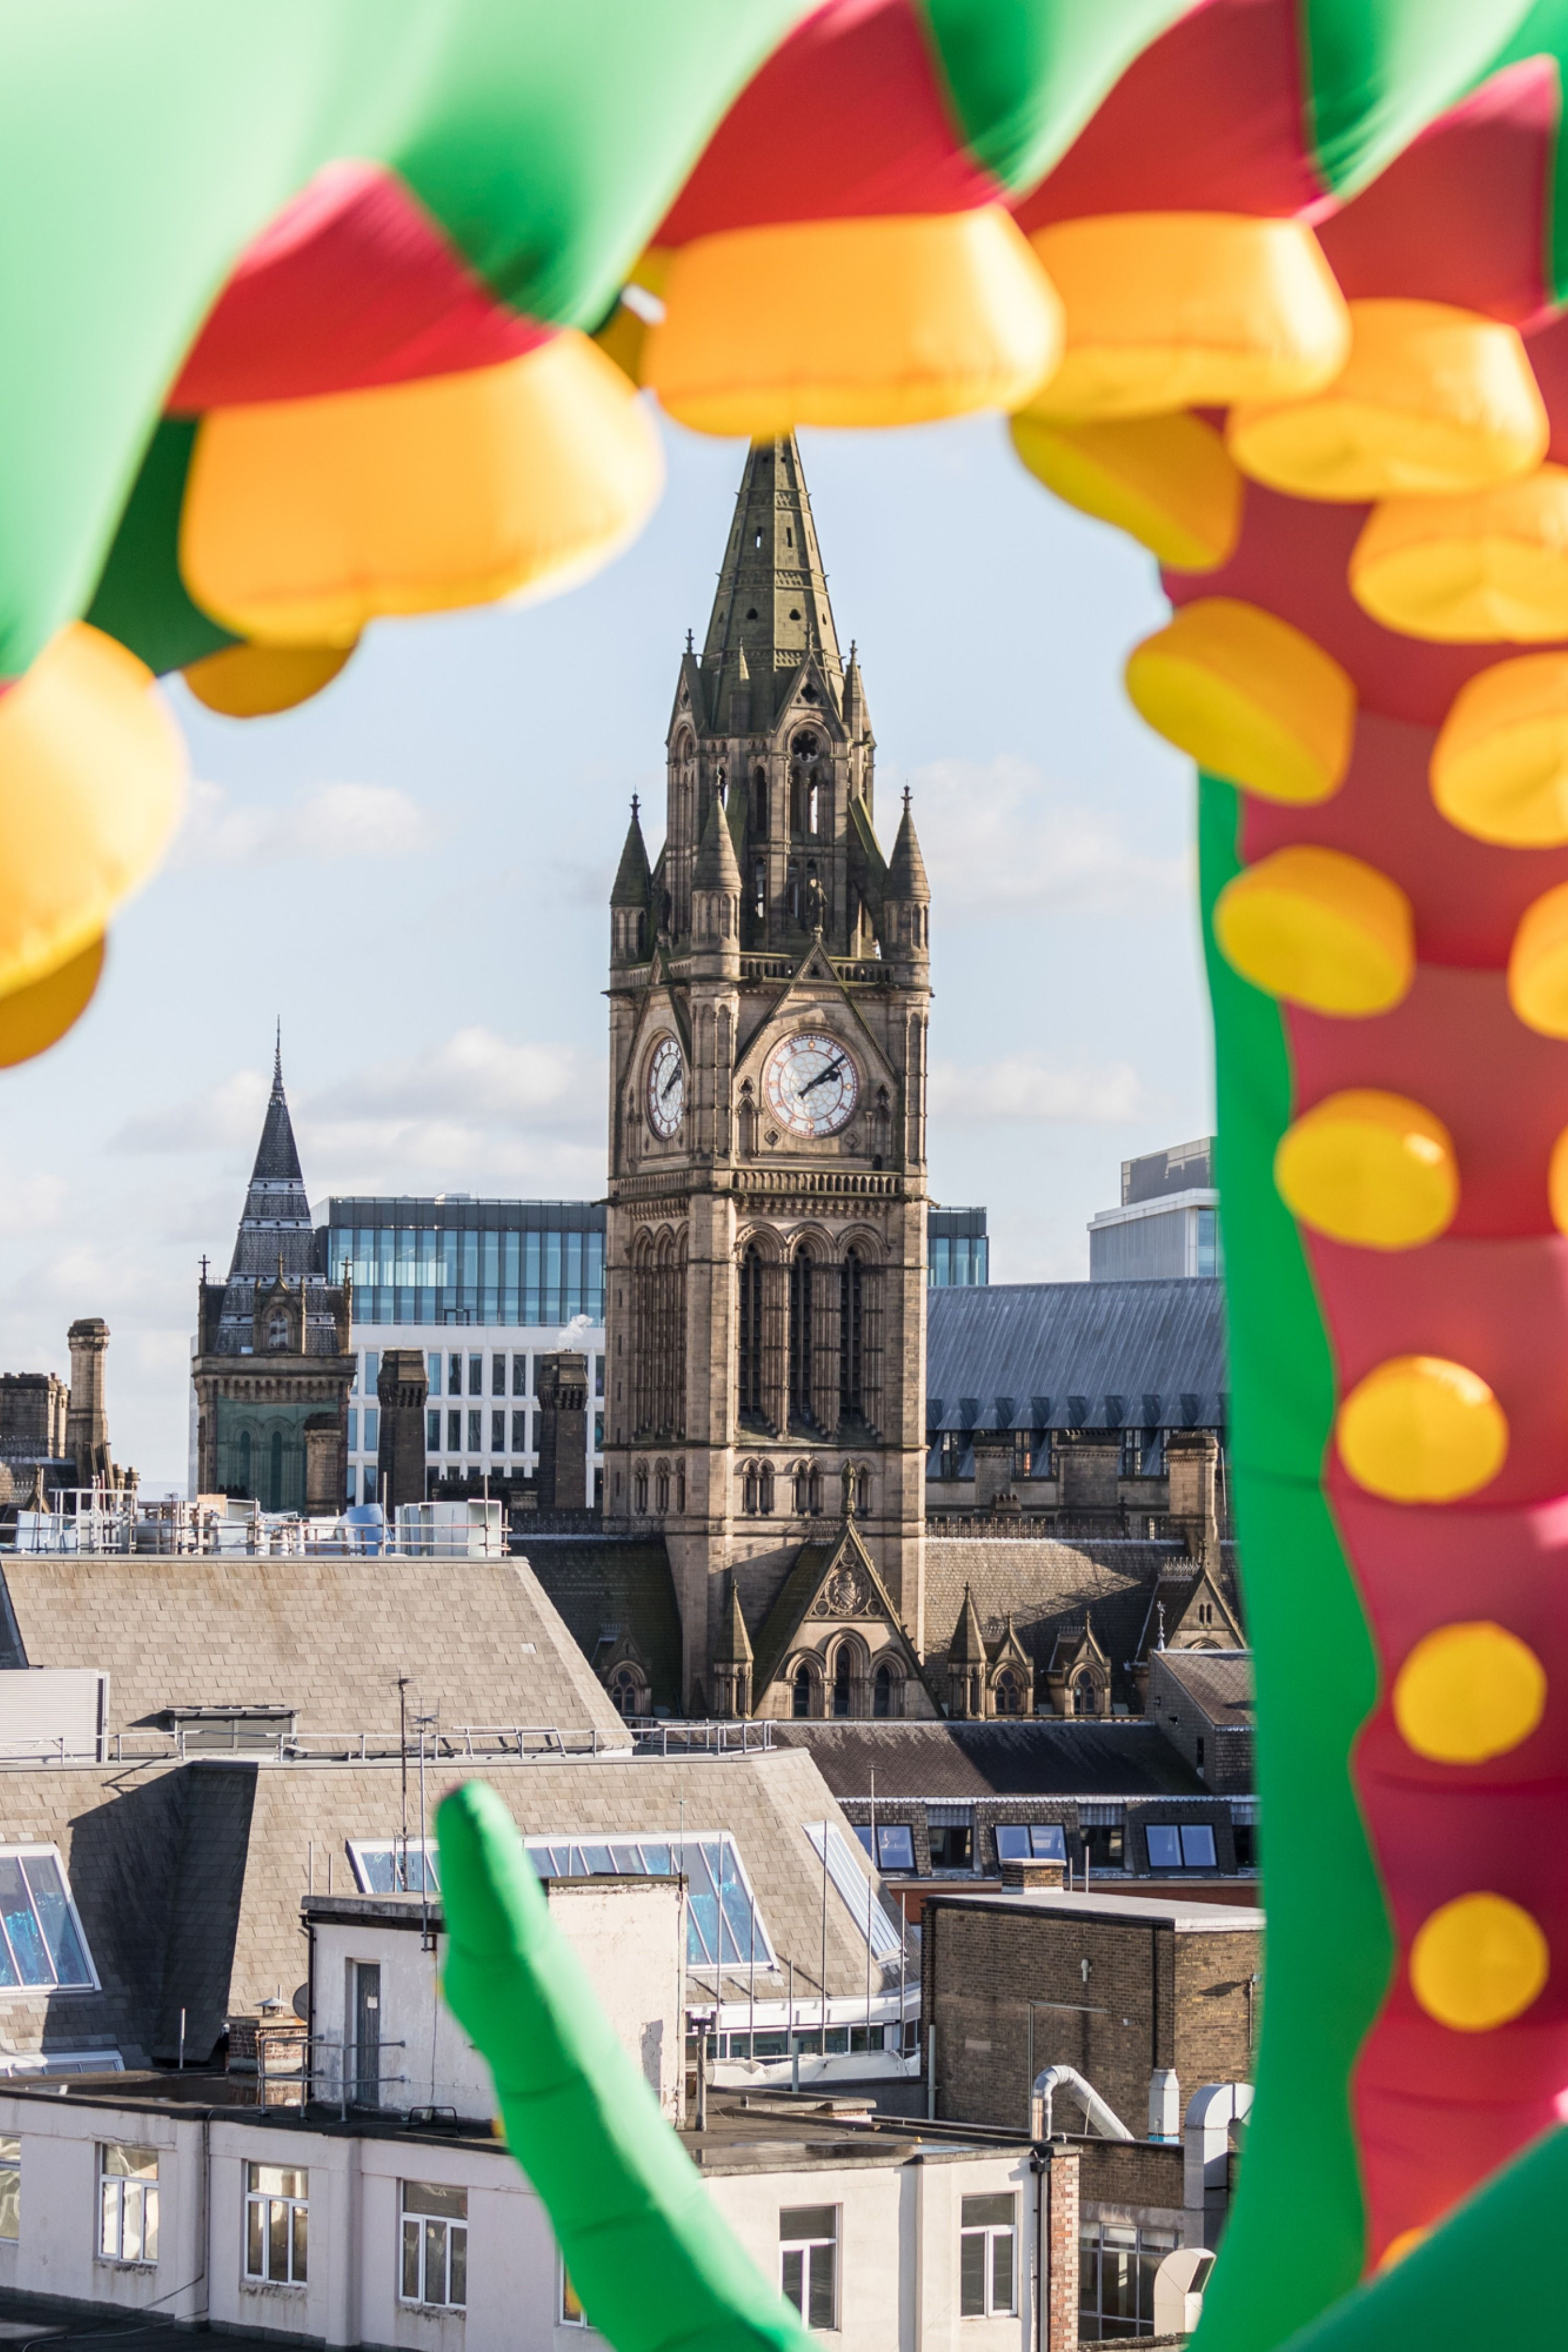 A spooktacular festival this Halloween in Manchester